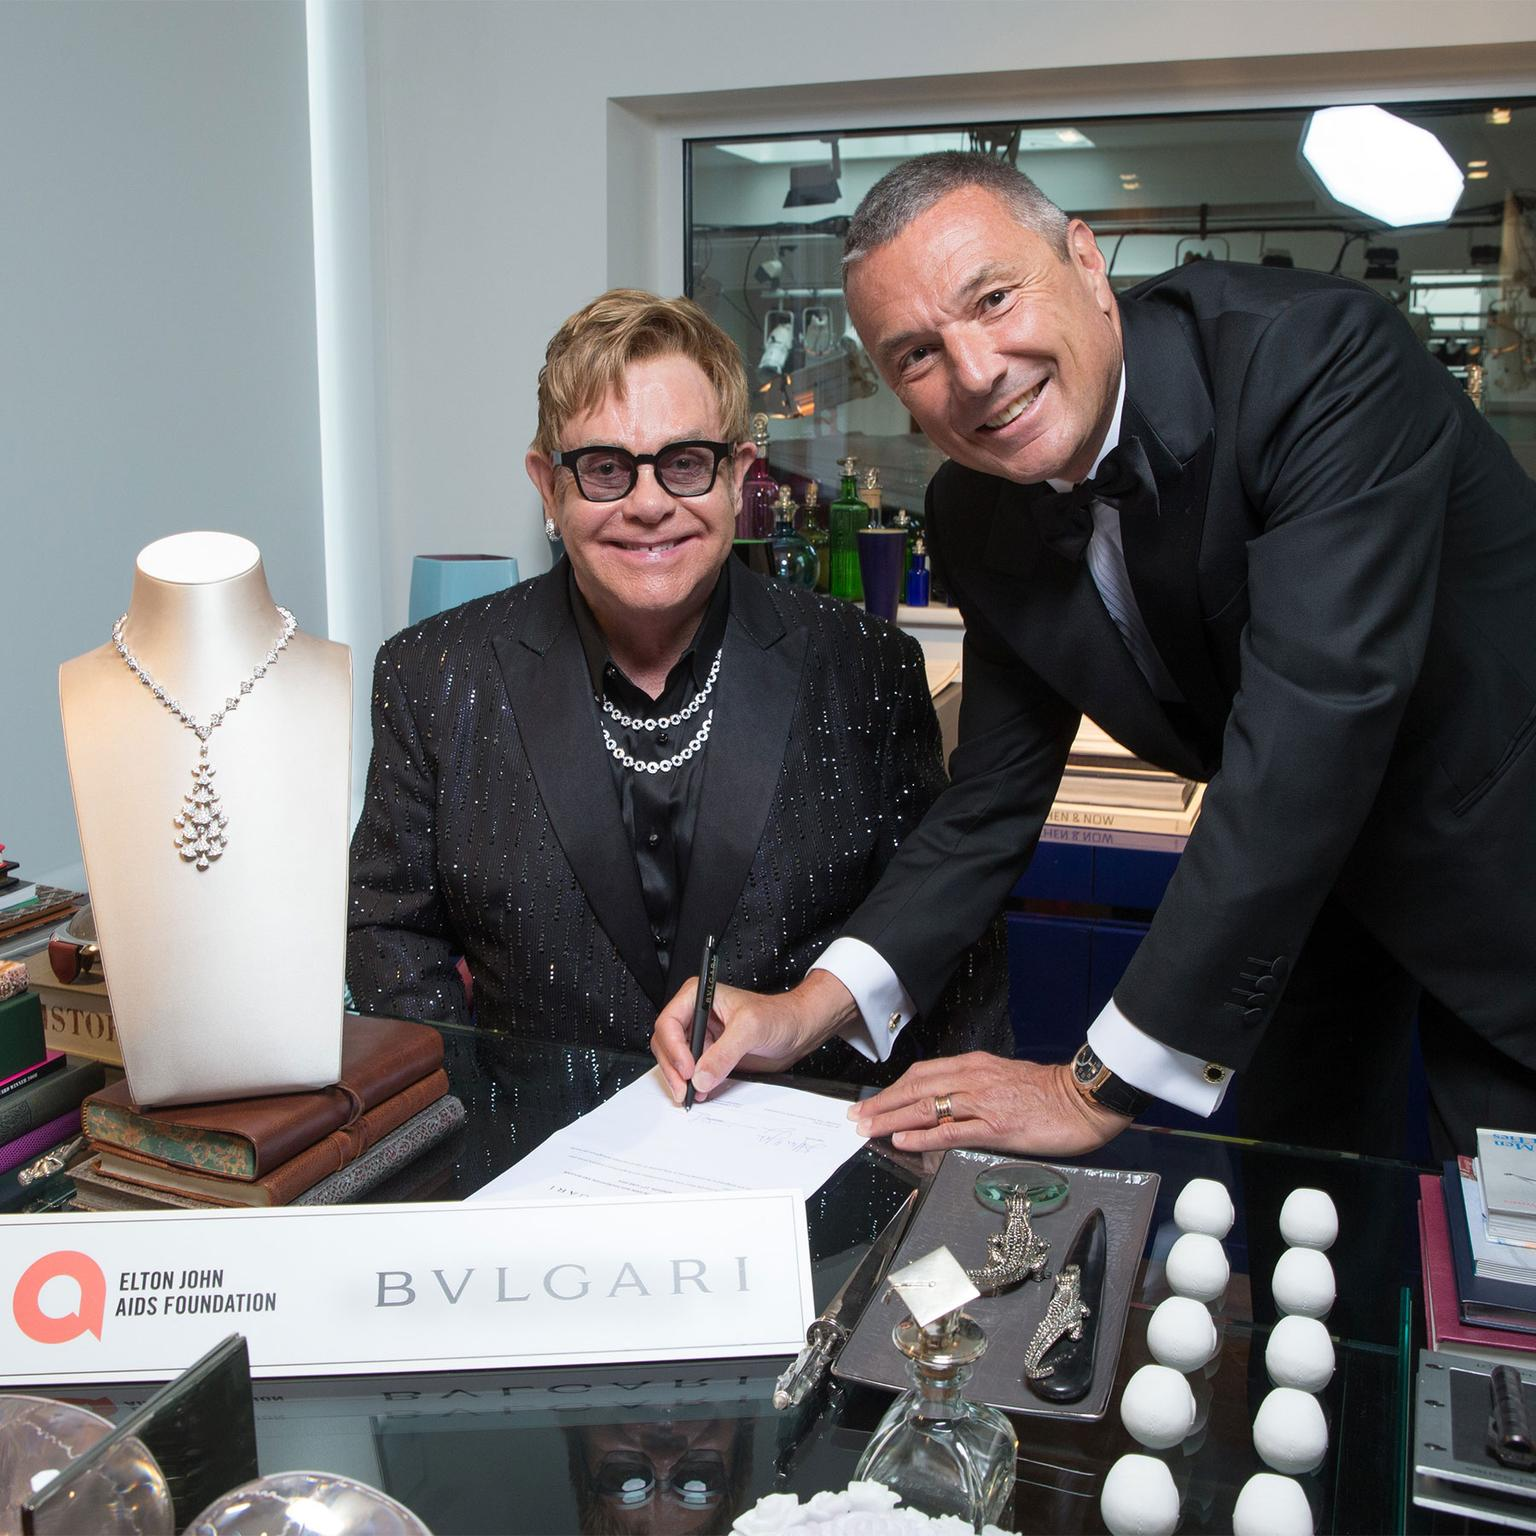 Sir Elton John and Jean Christophe Babin with Bulgari's Diva's Dream necklace